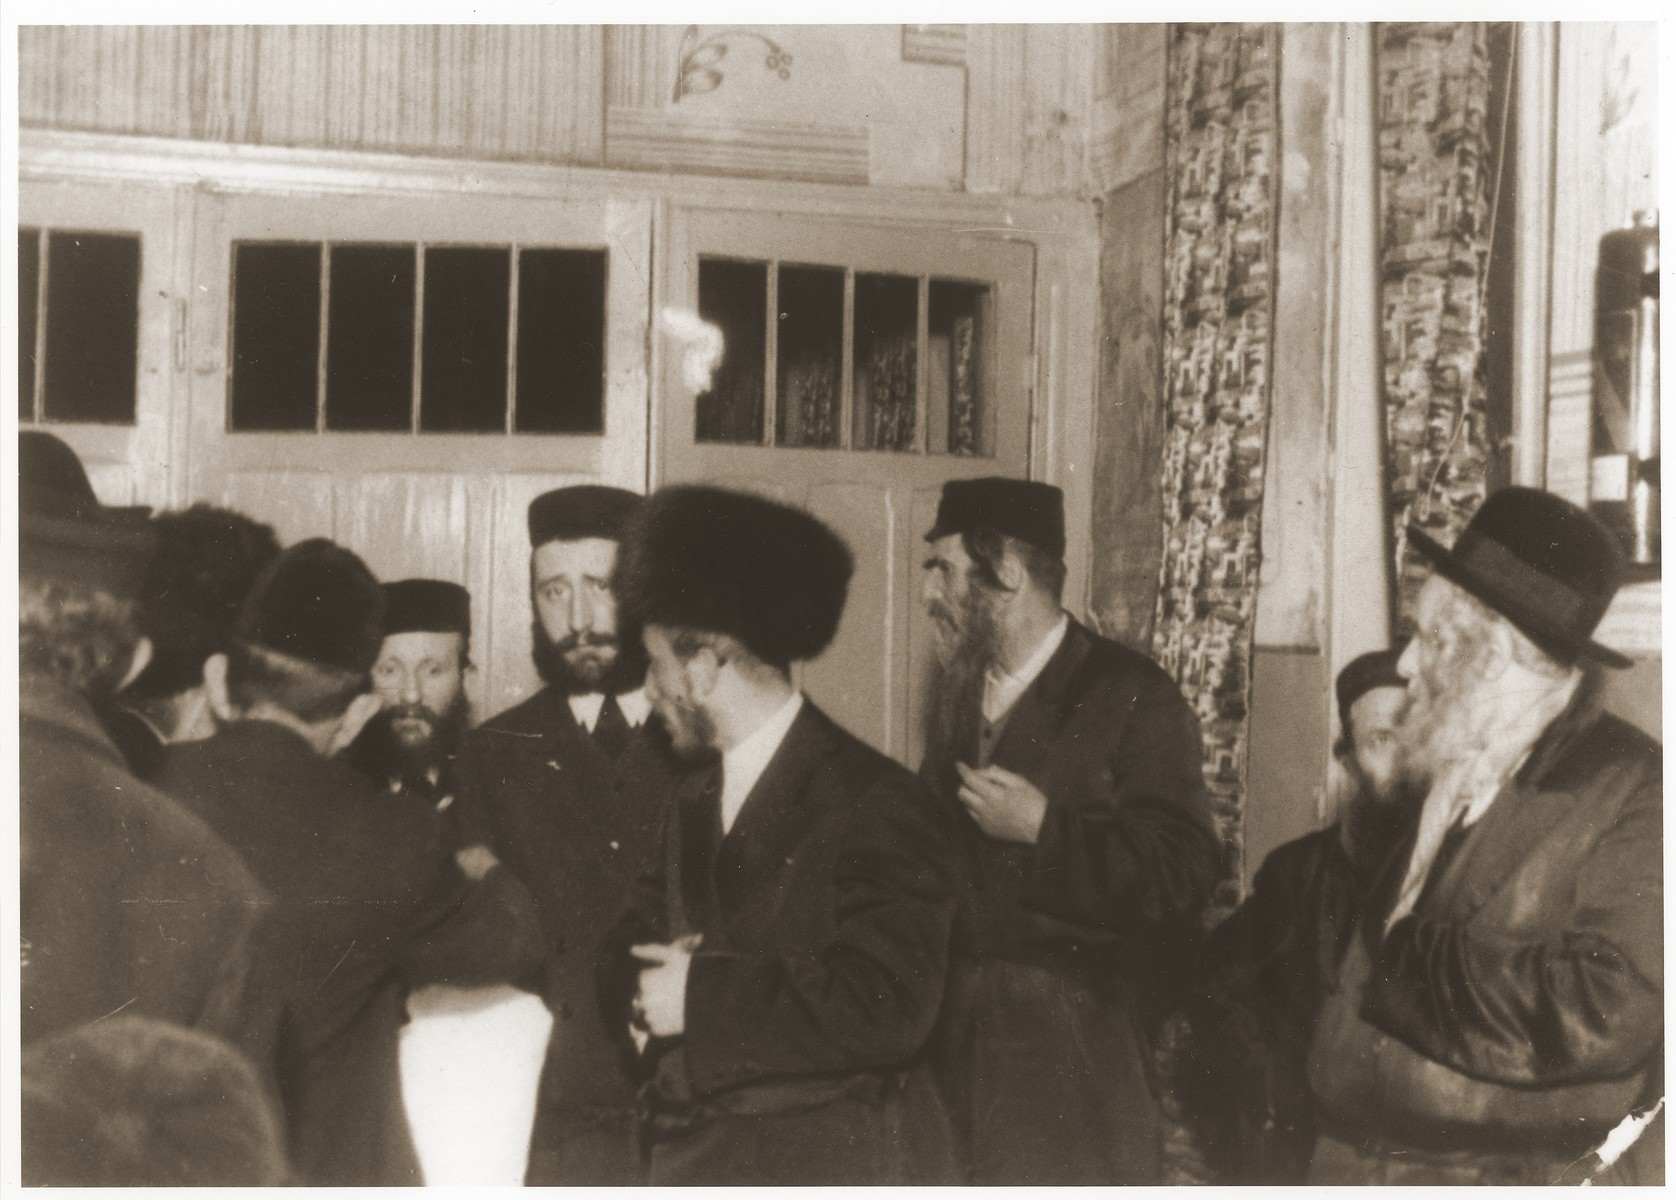 Ger Hasidim, including the rebbe, gather to greet  bridegroom before a wedding.  Among those pictured are Abram Mordche Kopelman and Symcha Binem Alter.